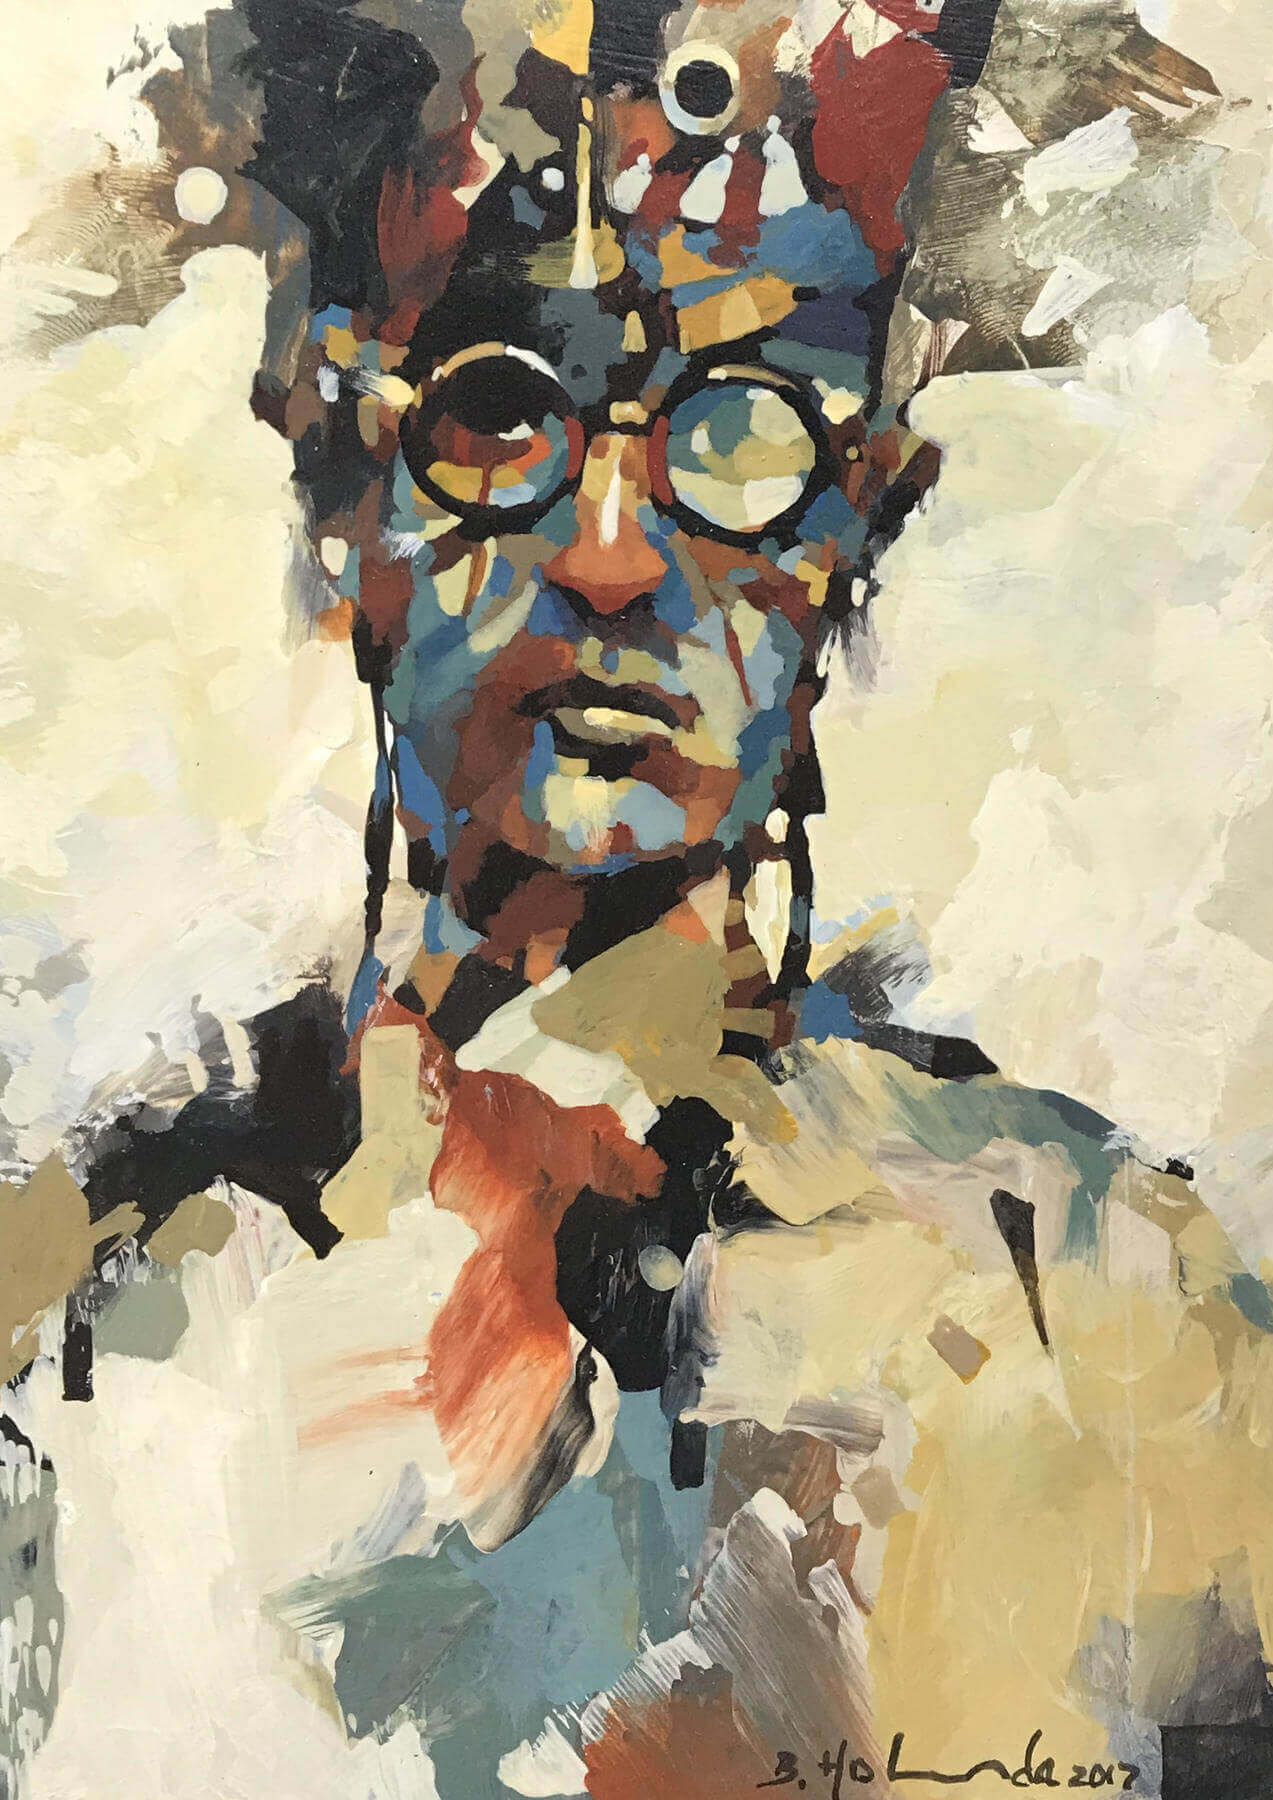 """Portrait Series #13"" by Bruce Holwerda at Canary Gallery"